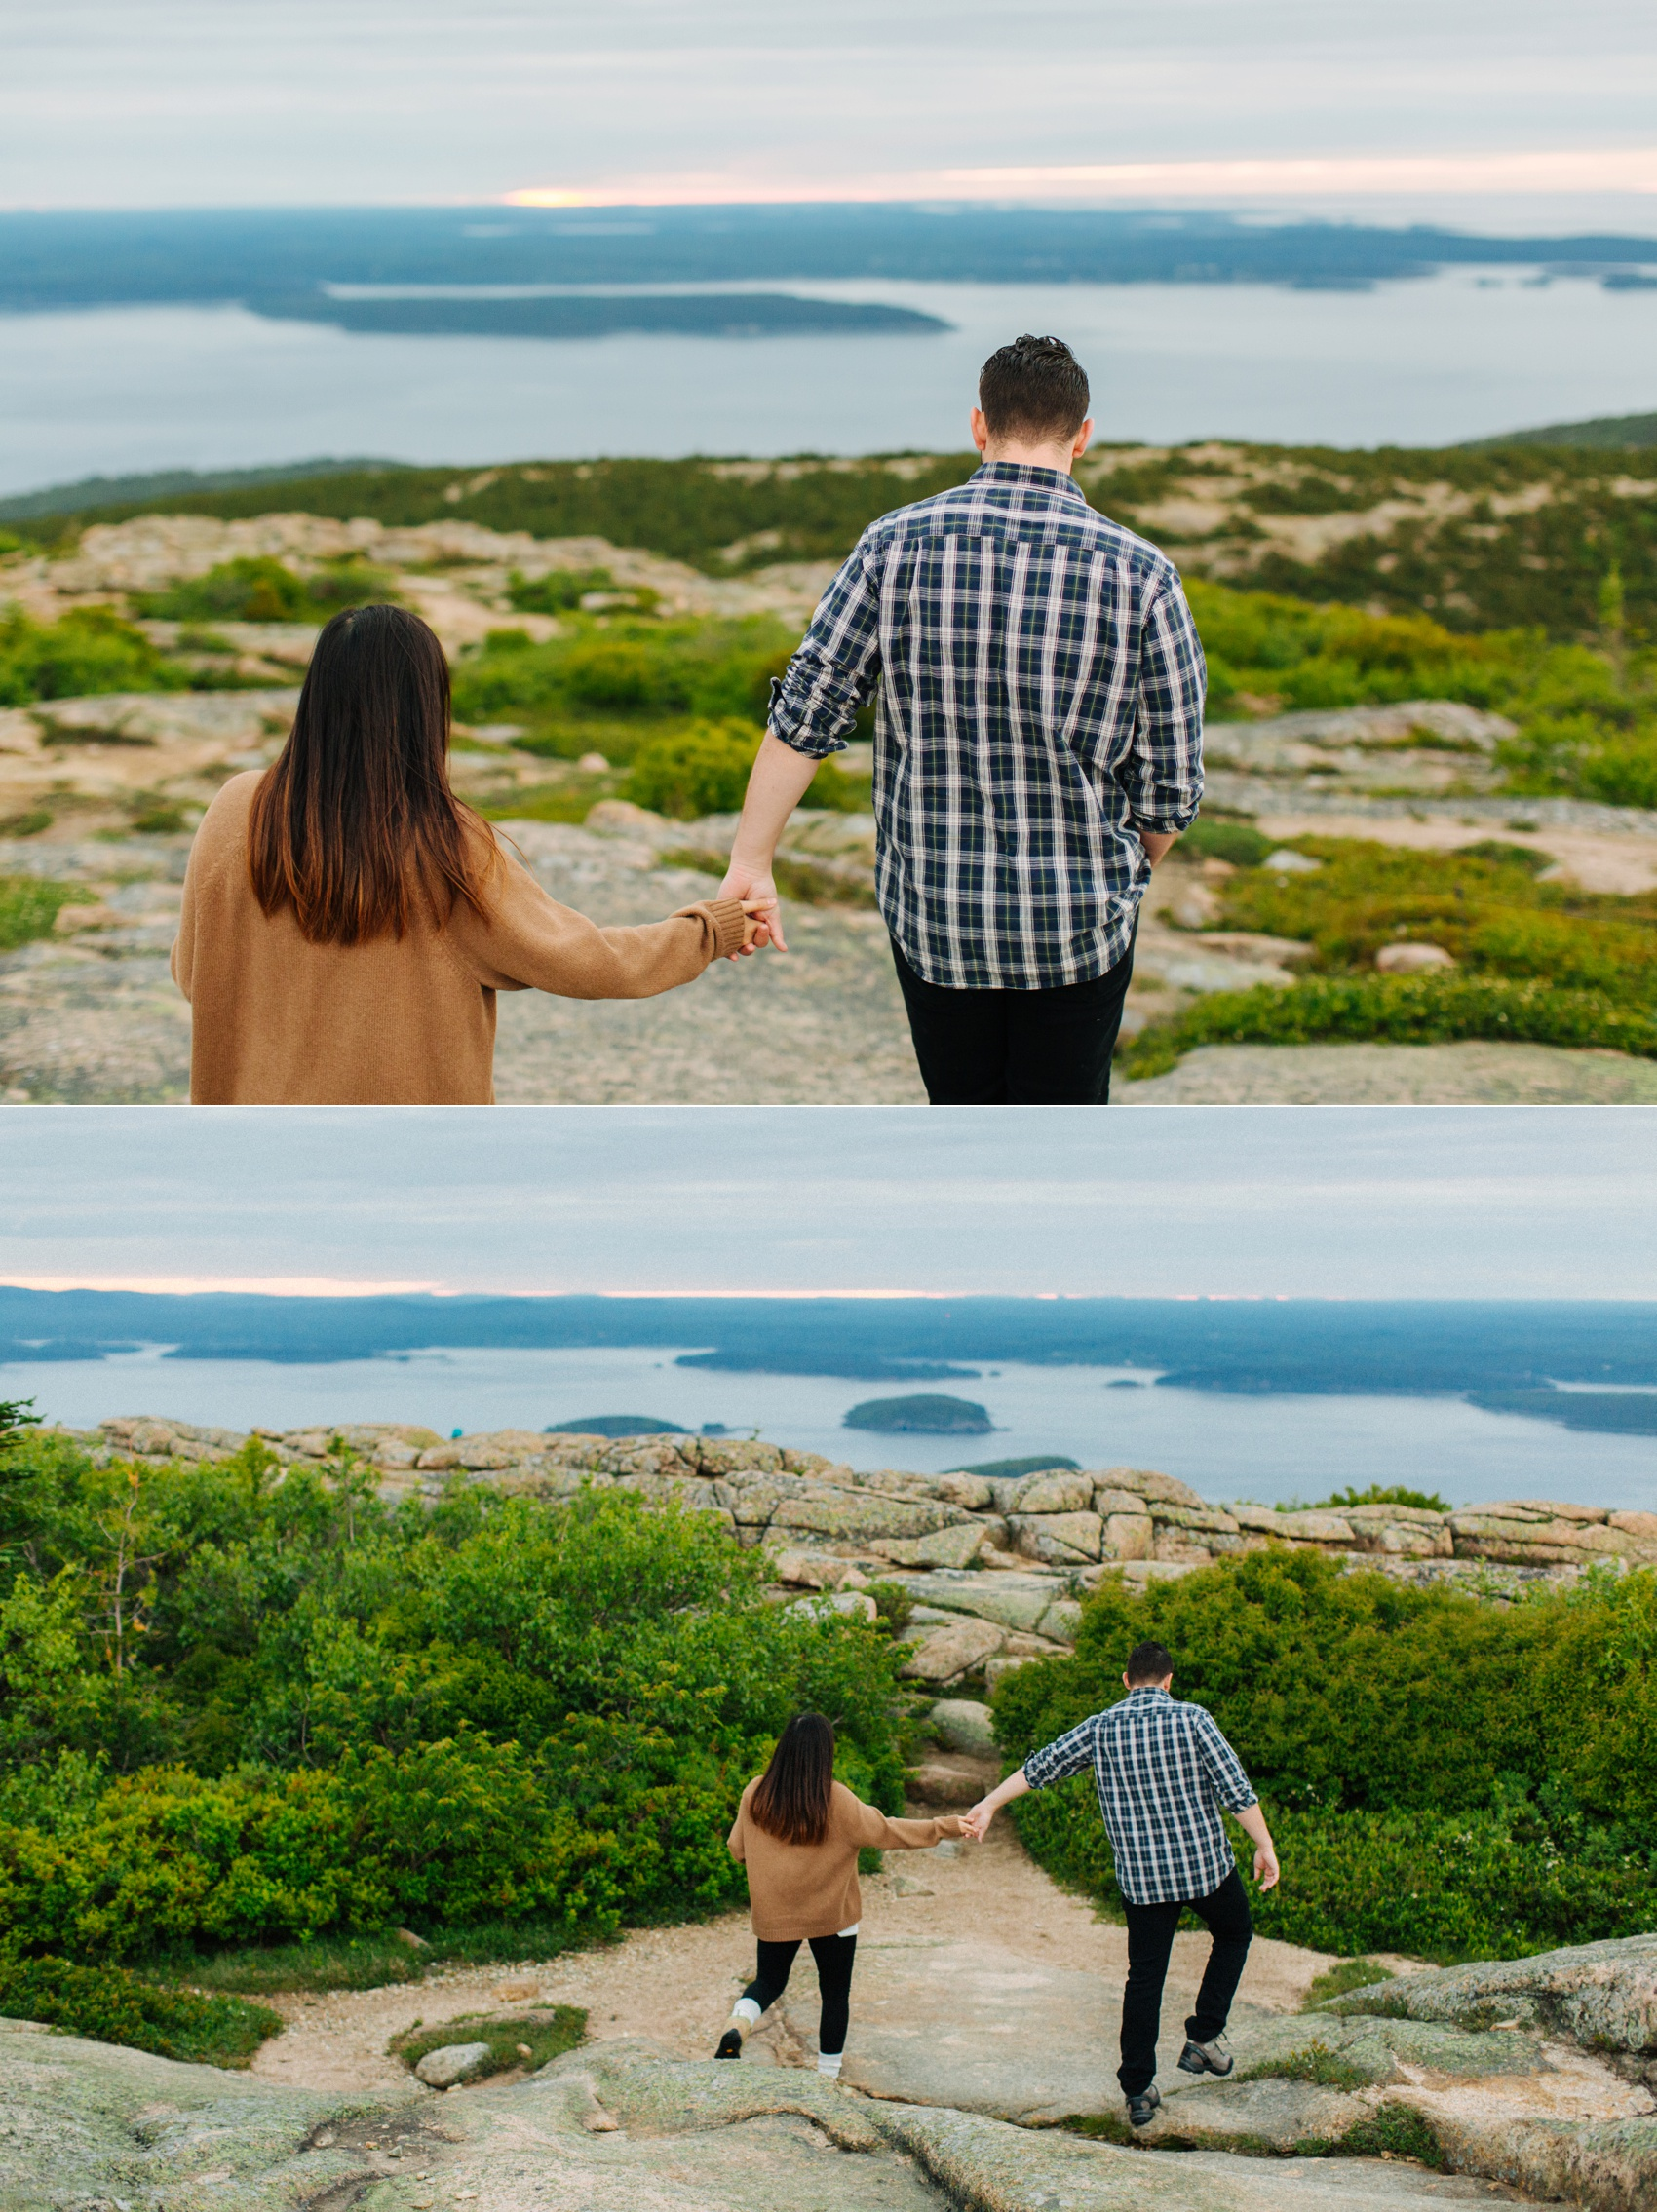 jake and jill acacdia national park engagement session cadillac mountain engagement session jordan pond engagement session maine engagement session jake and katie_0002